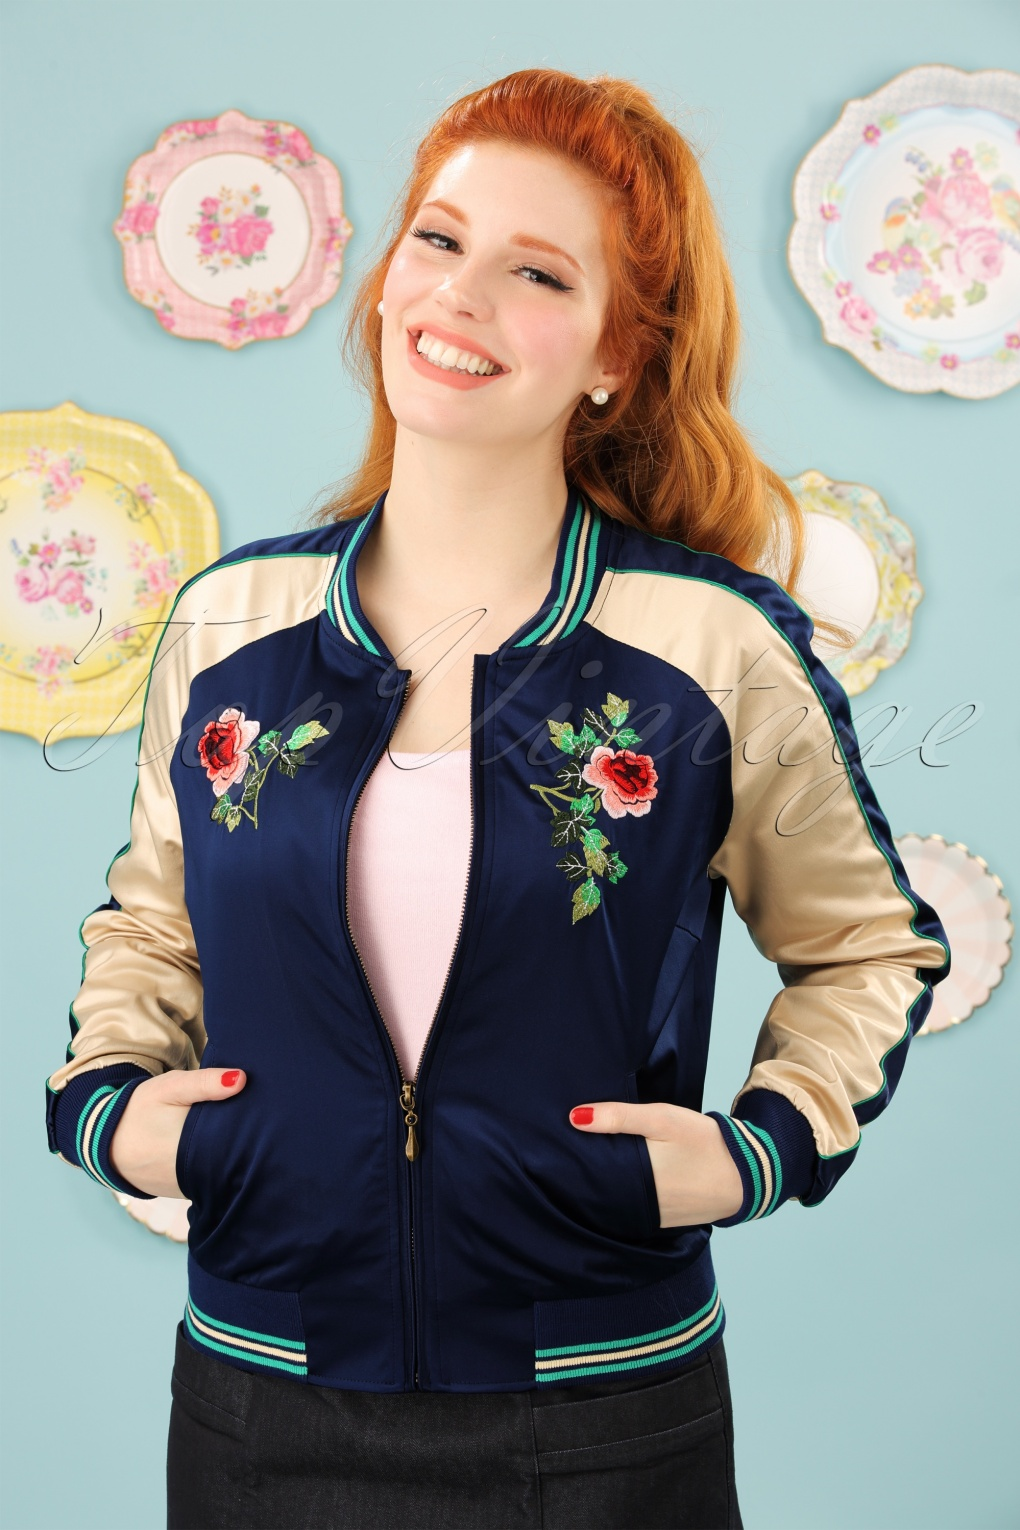 Vintage Coats & Jackets | Retro Coats and Jackets 50s Sayuri Baseball Jacket in Blue £120.92 AT vintagedancer.com